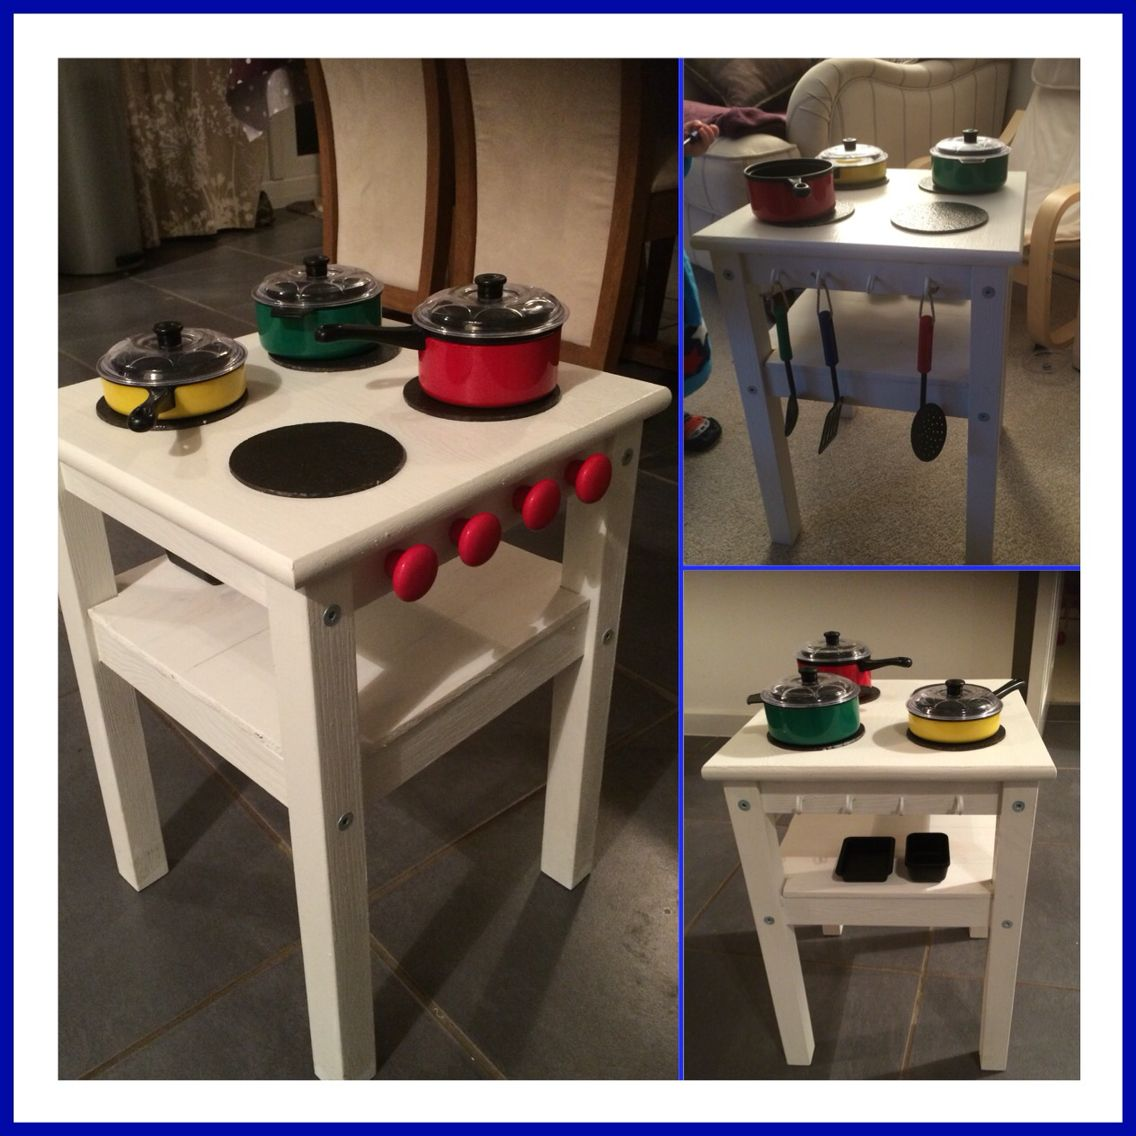 Play kitchen for our toddler made from a £7 IKEA oddvar stool